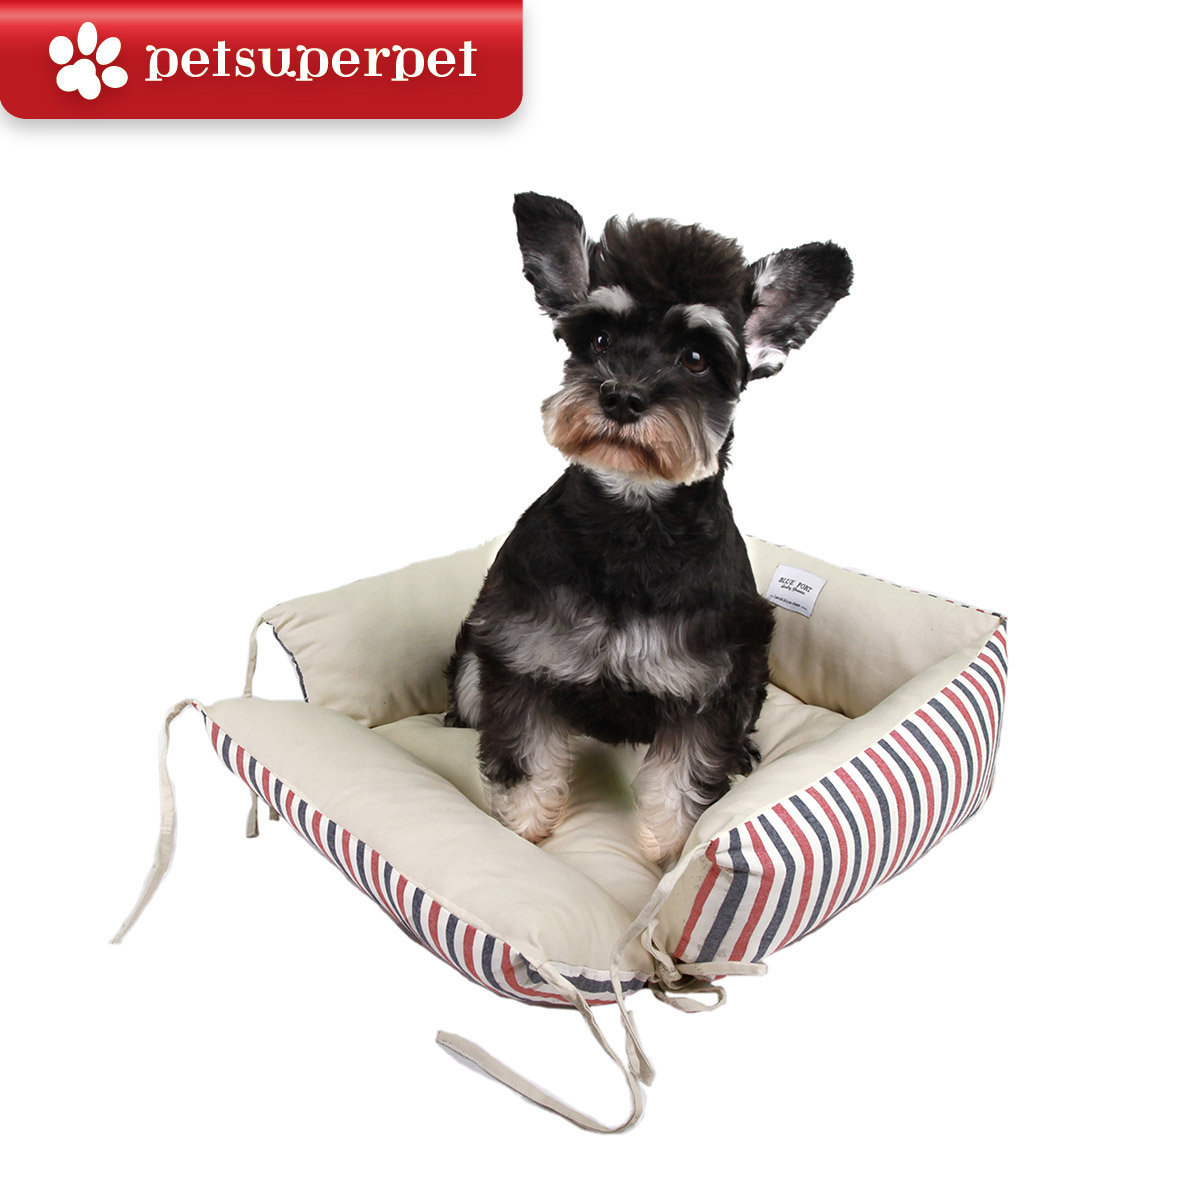 Red & Blue Striped Pet Couch (Parallel Import Goods)